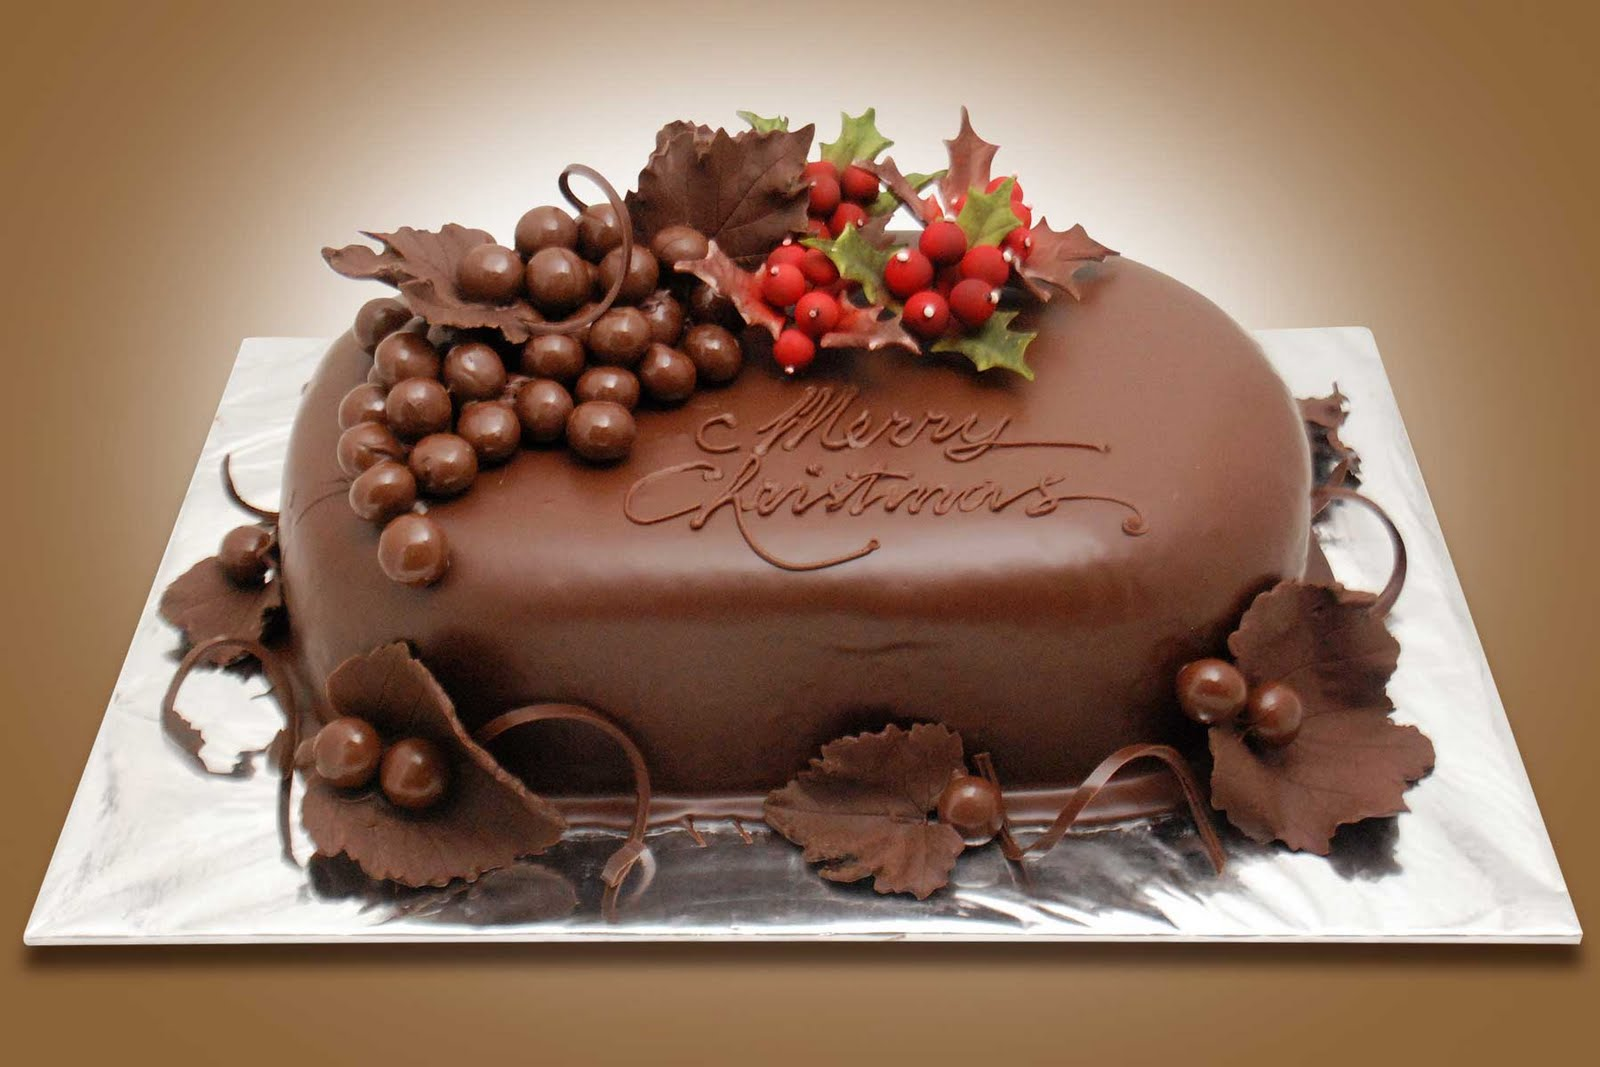 Cake Artist 4 You : 1000+ images about Chocolate Cakes & Pastries on Pinterest ...